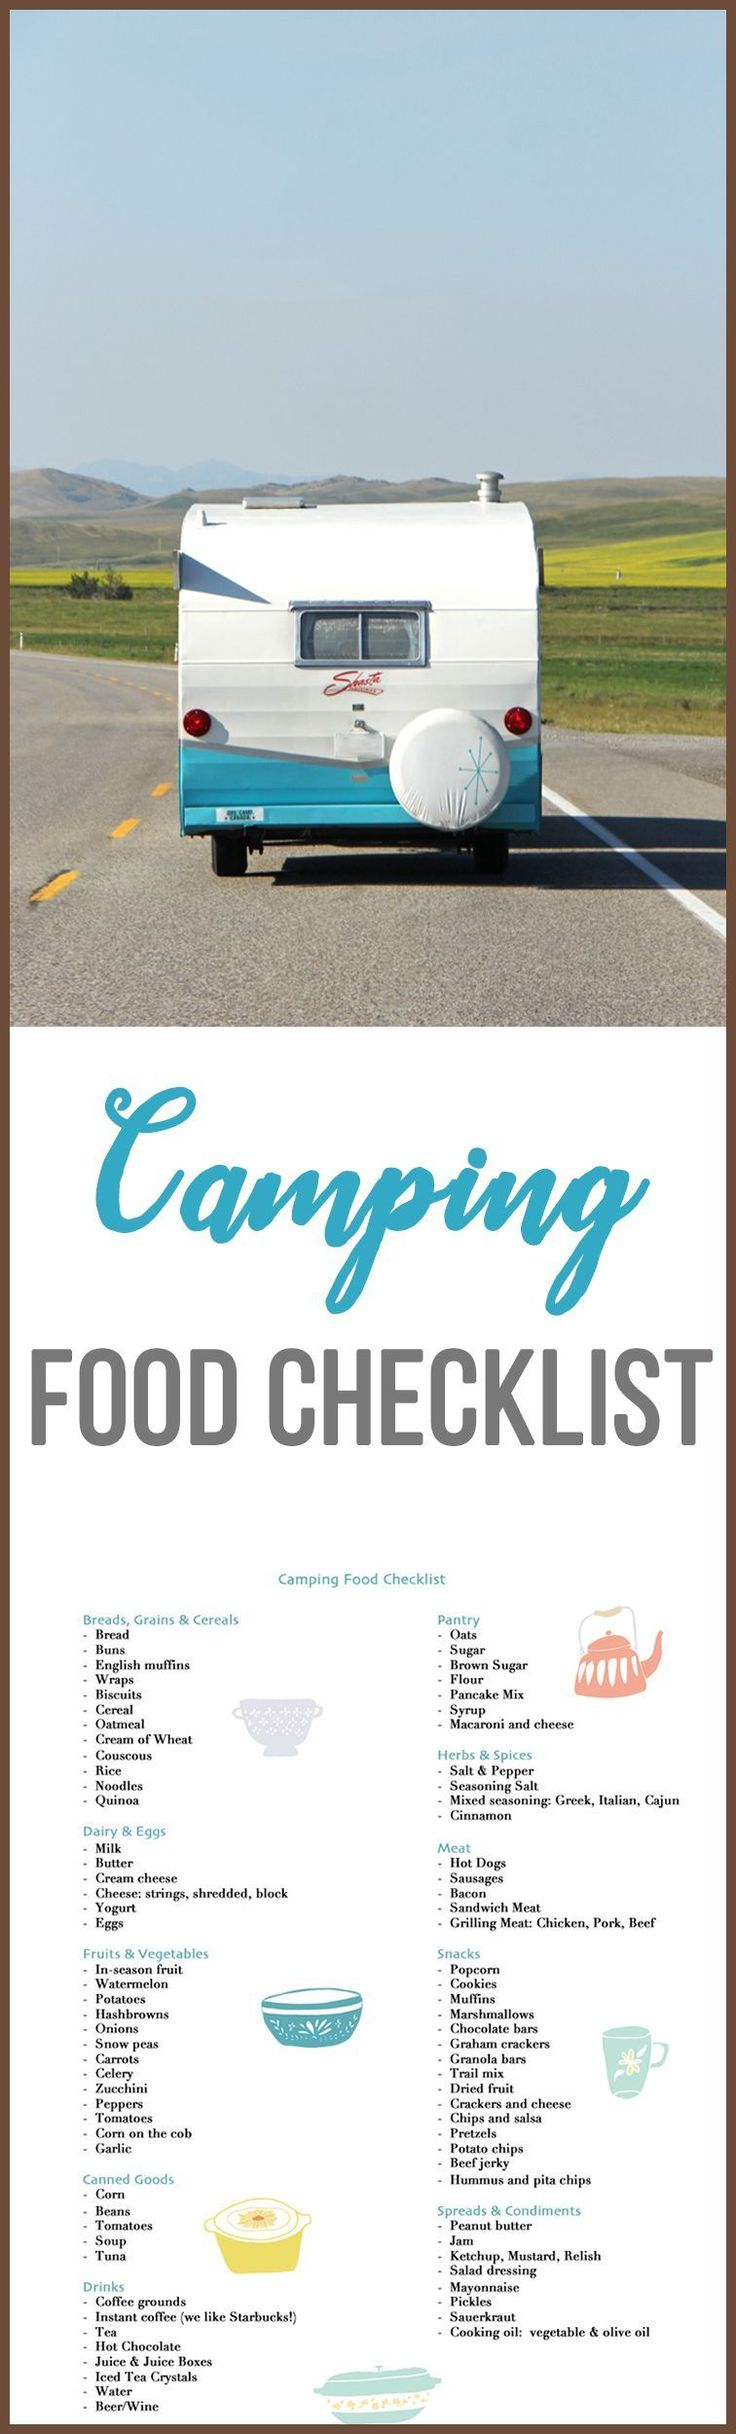 Camping Hacks - Sleeping Under The Stars: Camping Hacks And Tricks *** More details can be found by clicking on the image. #CampingTable